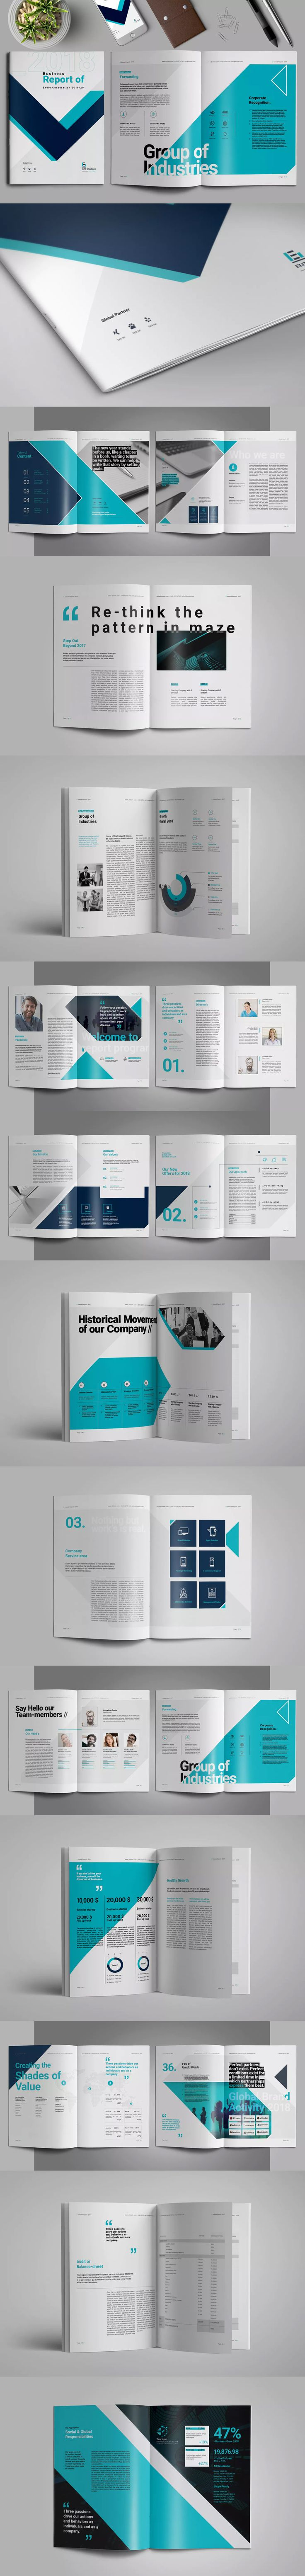 Report Brochure Template InDesign INDD - A4 and US Letter Size